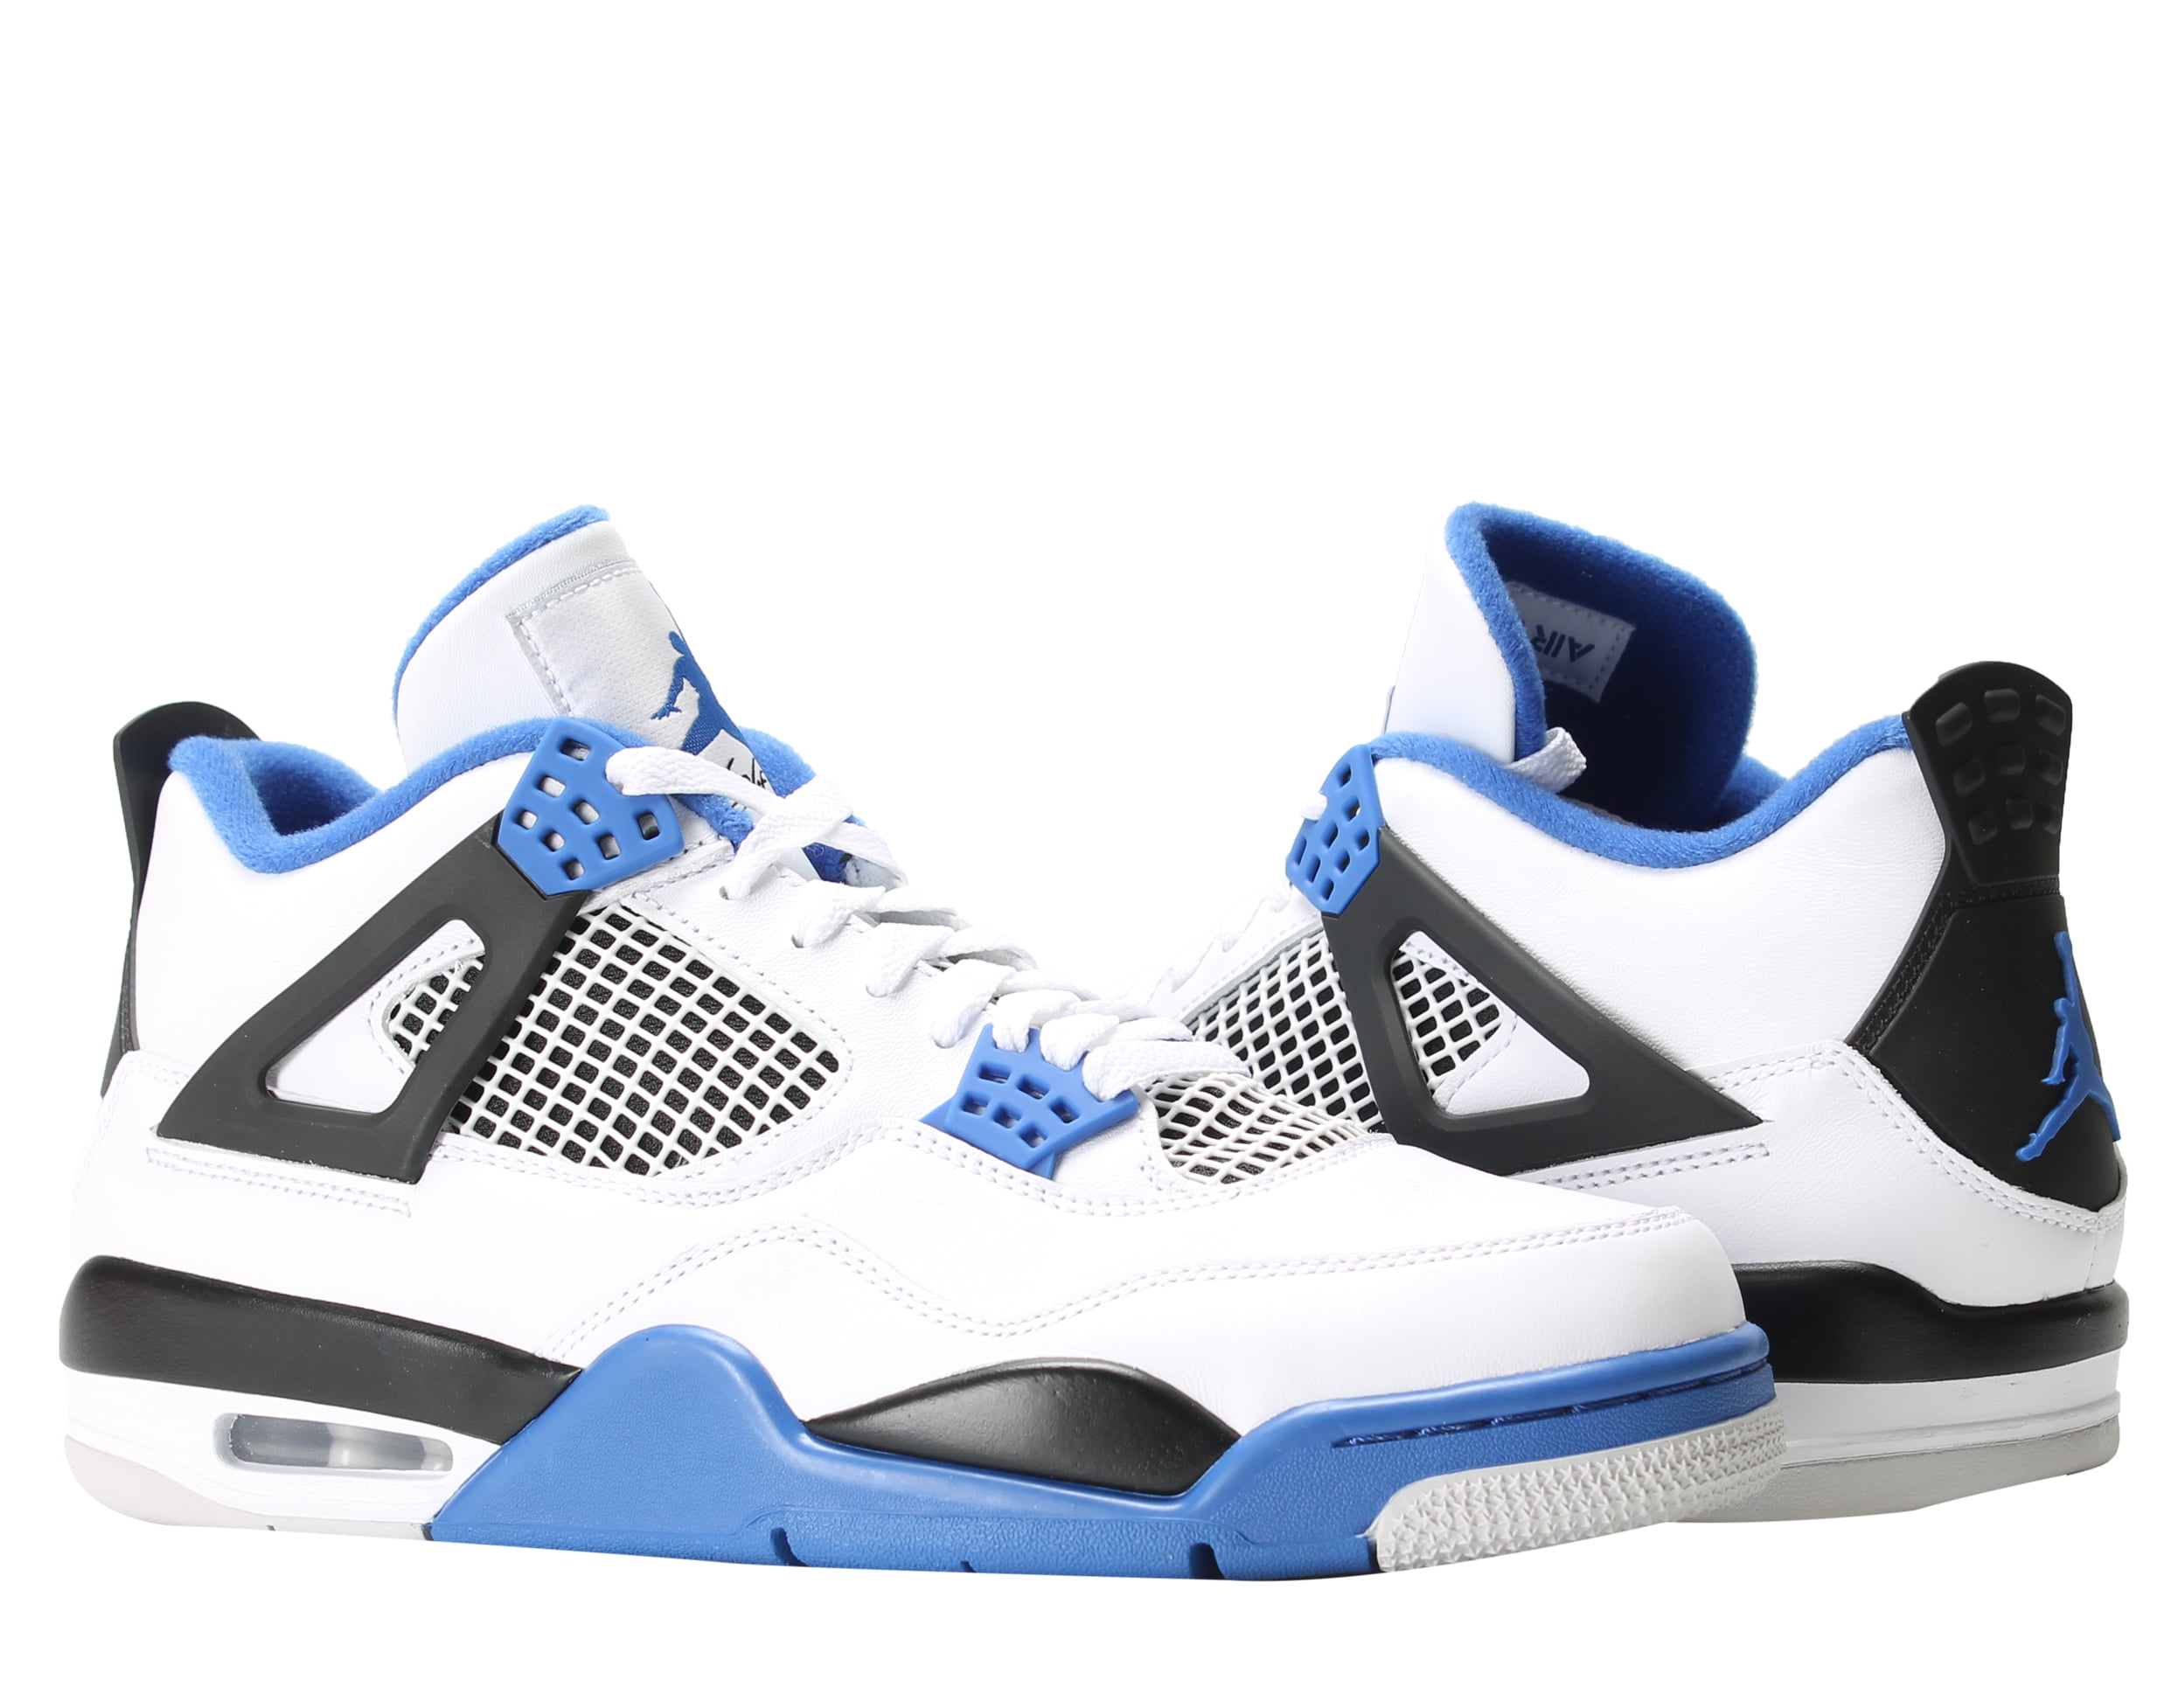 the best attitude dcd7b 38be7 cheapest nike air jordan 4 retro motorsports blue mens basketball shoes 308497  117 57904 c6dc1